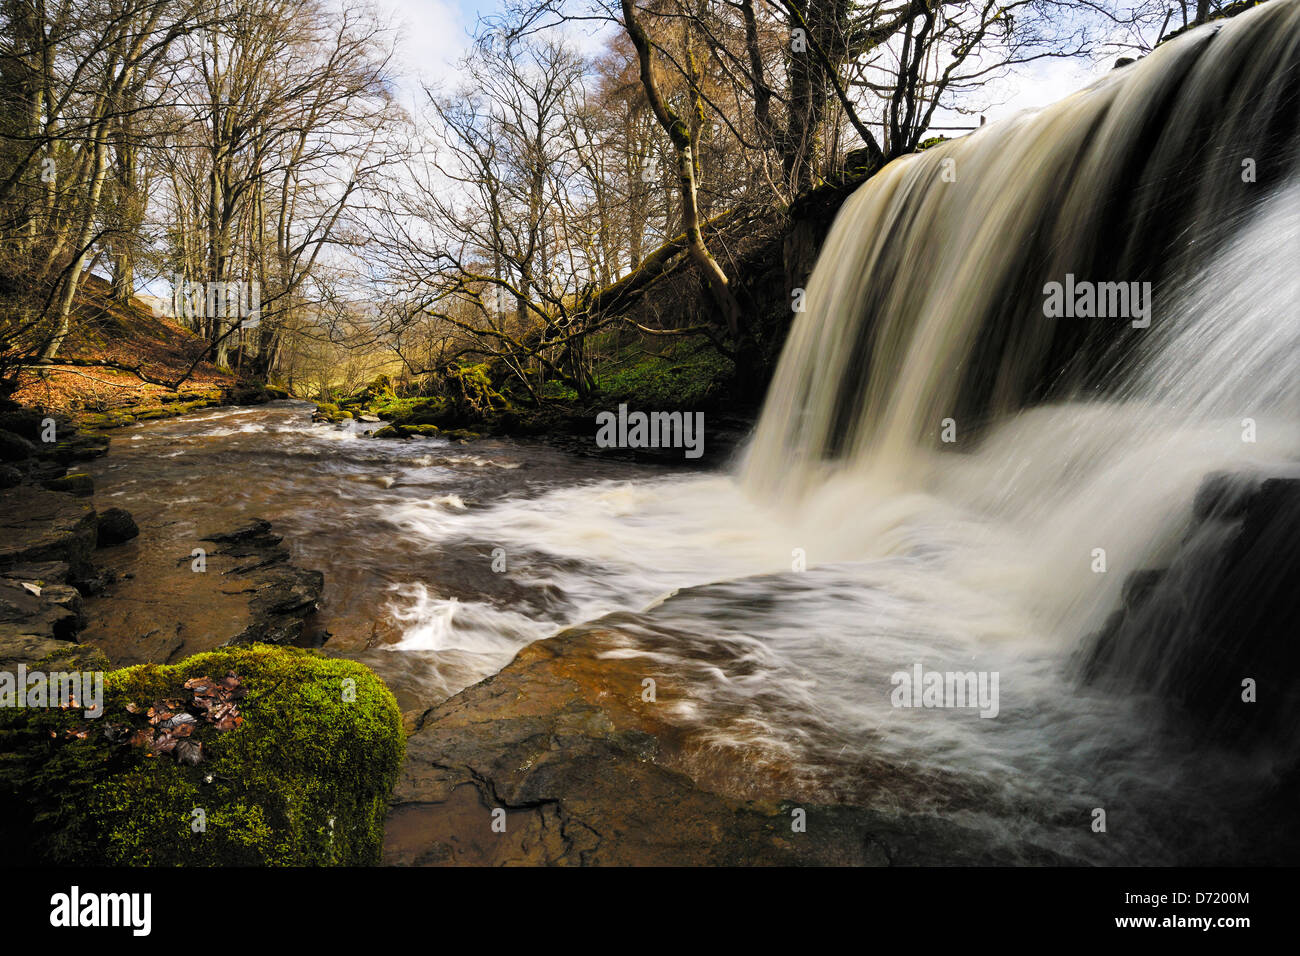 Plunging, splashing, fast flowing water in Haverdale Woods, Swaledale, Yorkshire, England - Stock Image